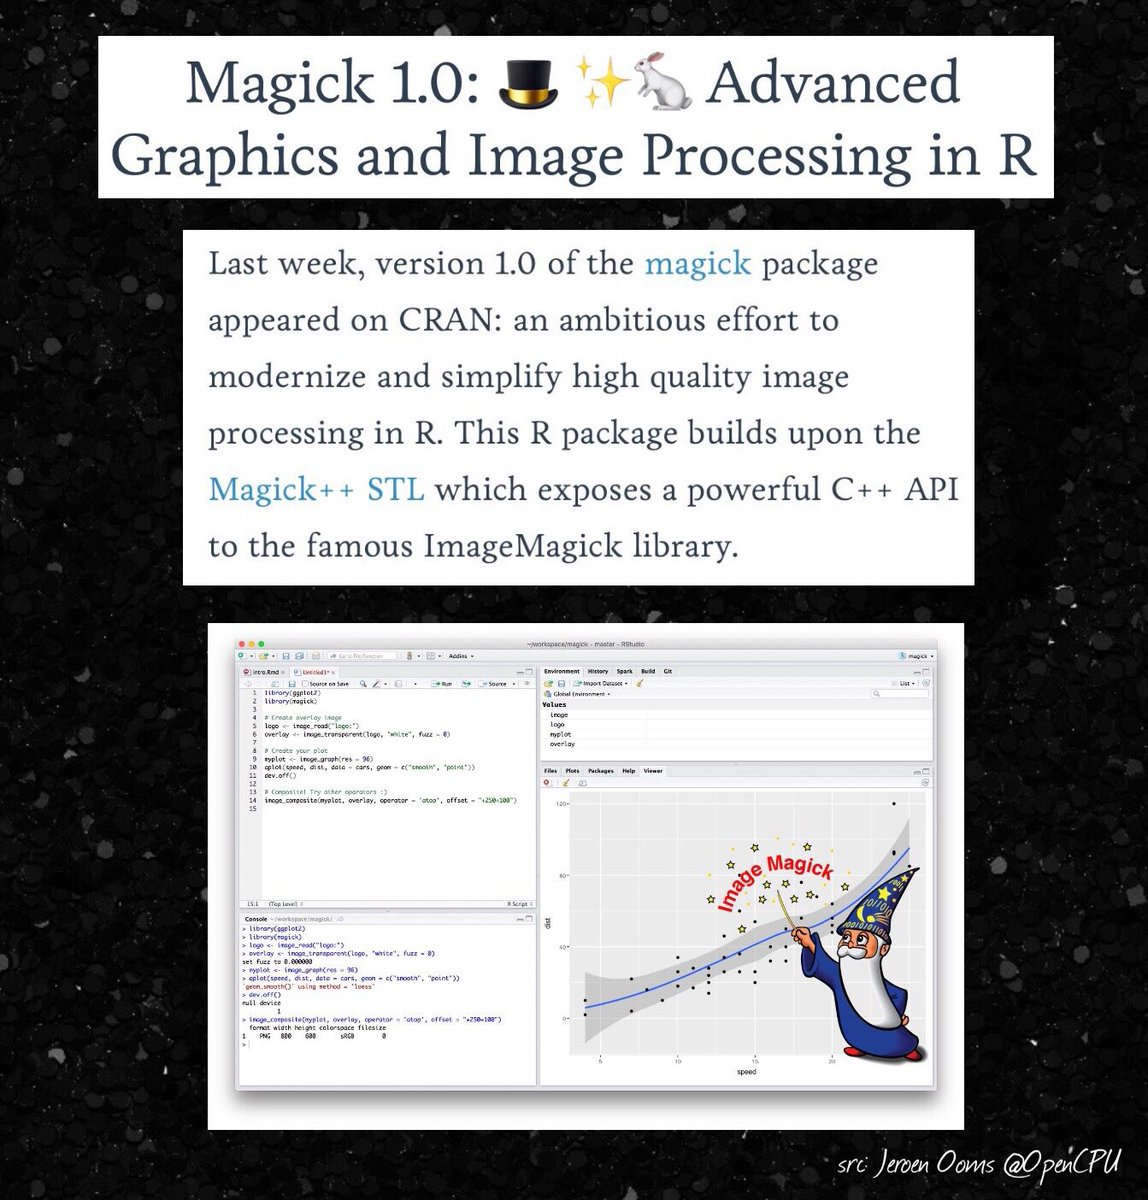 """Mara Averick on Twitter: """"🎉 legit the greatest: """"Magick 1.0: 🎩 ✨🐇 Advanced Graphics and Image Processing in R"""" by @opencpu https://t.co/nzQKtFLPfG ..."""